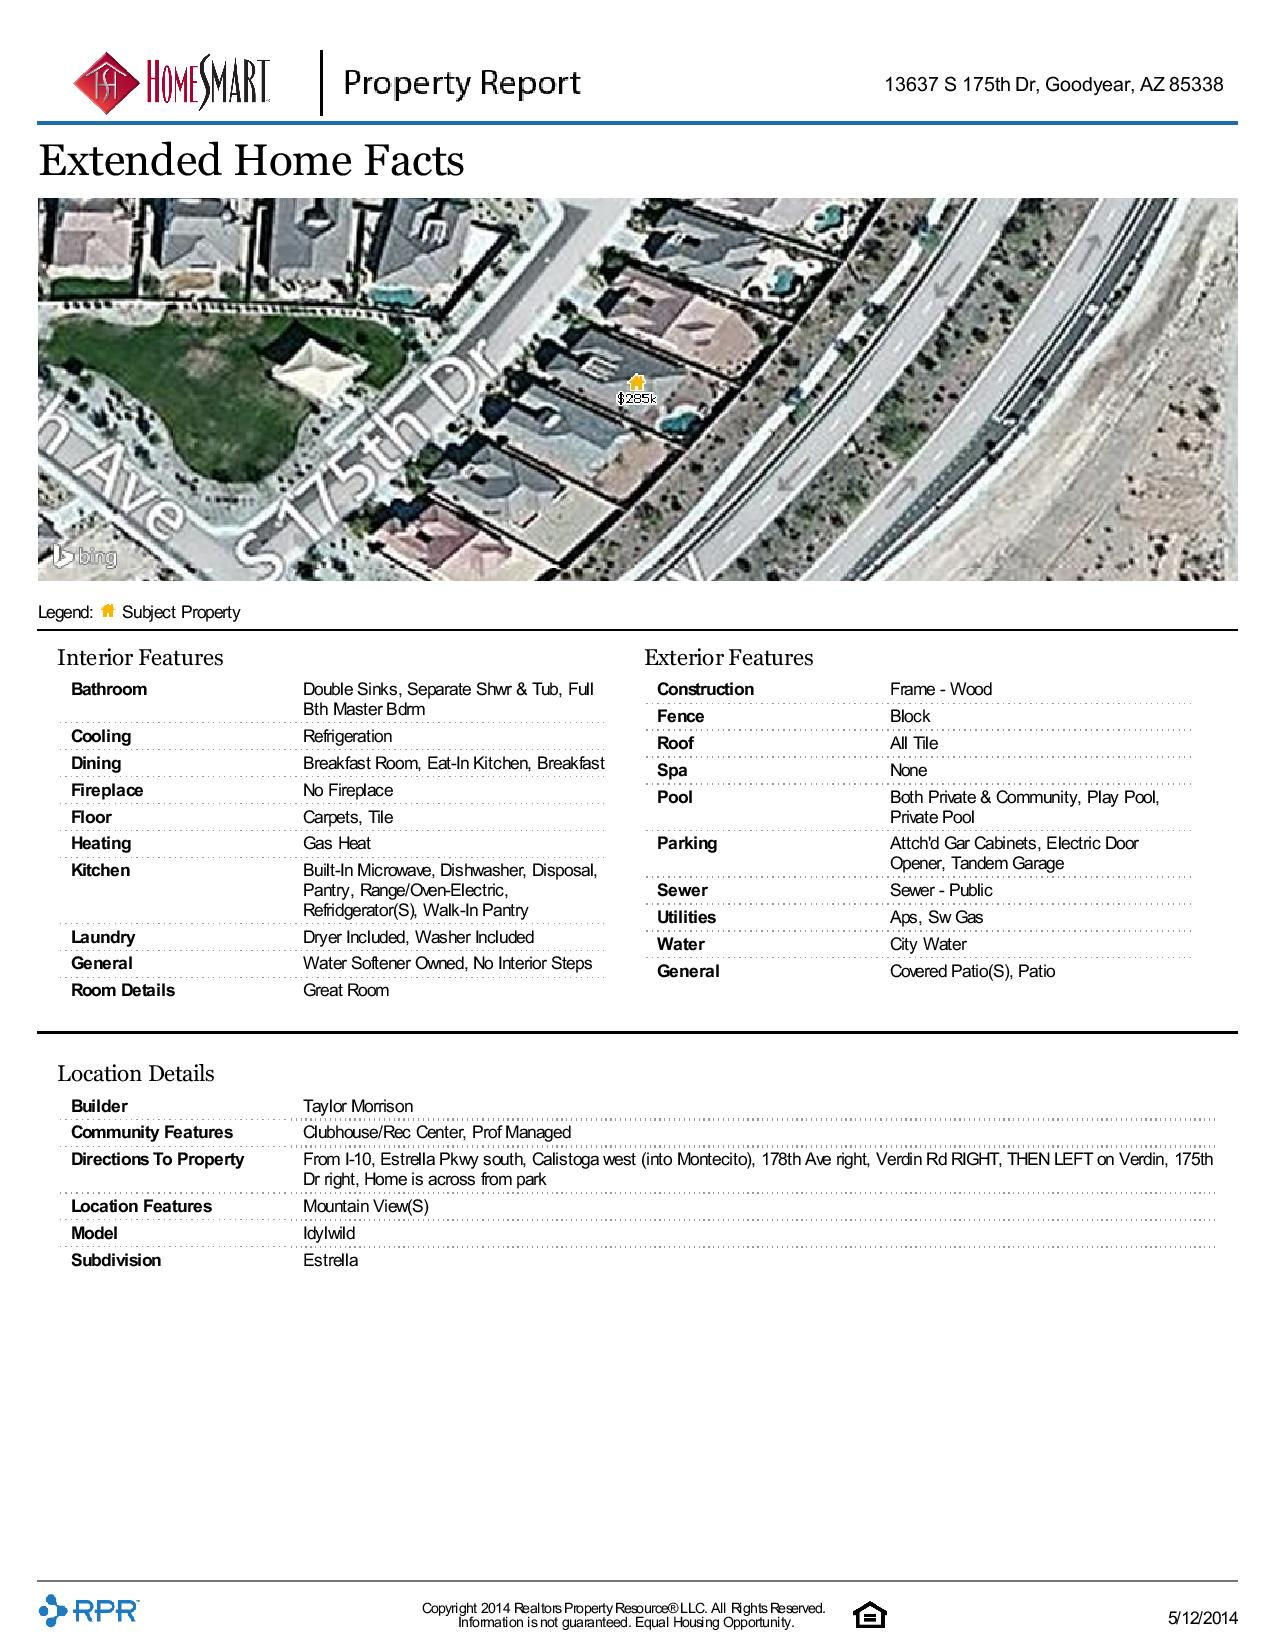 13637-S-175th-Dr-Goodyear-AZ-85338-page-004